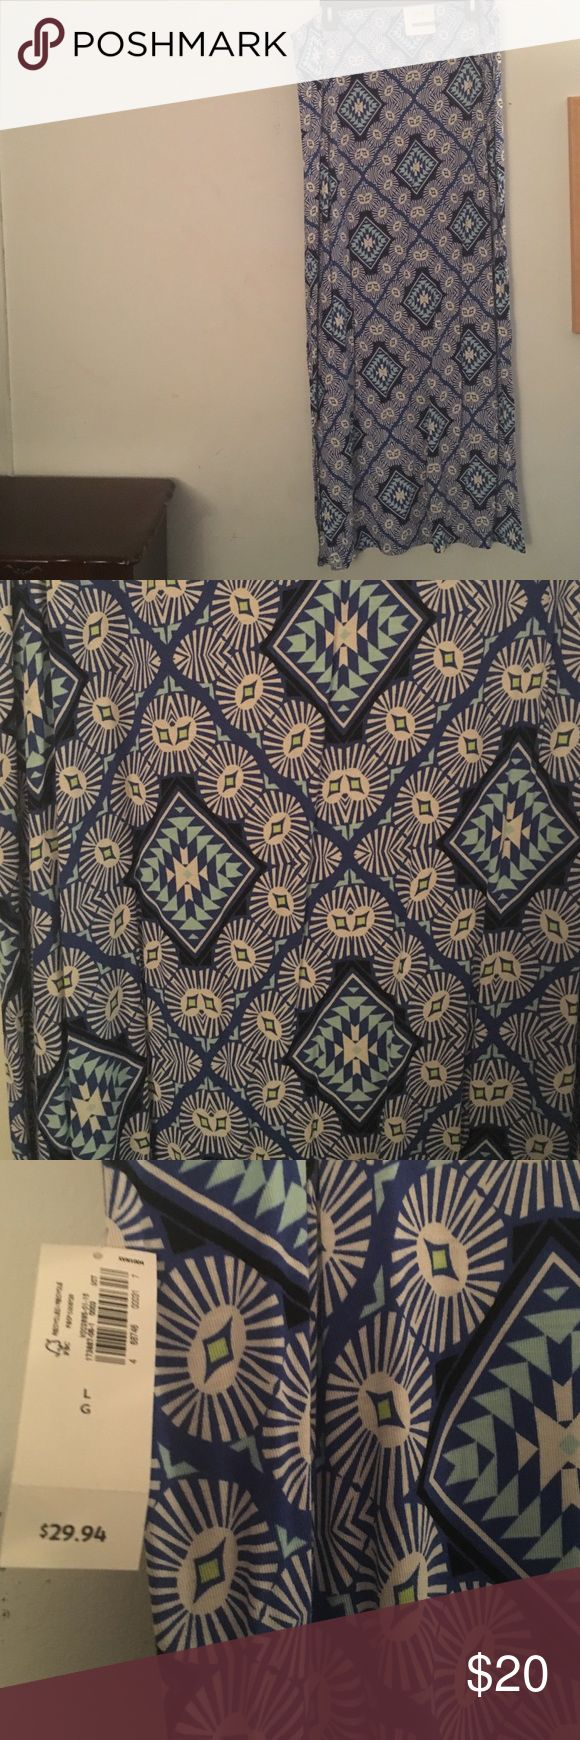 Cotton maxi skirt NWT Cotton maxi skirt, NWT. Elastic waistband, slit in either side up to knee. Blue and white geometric pattern. Old Navy Skirts Maxi